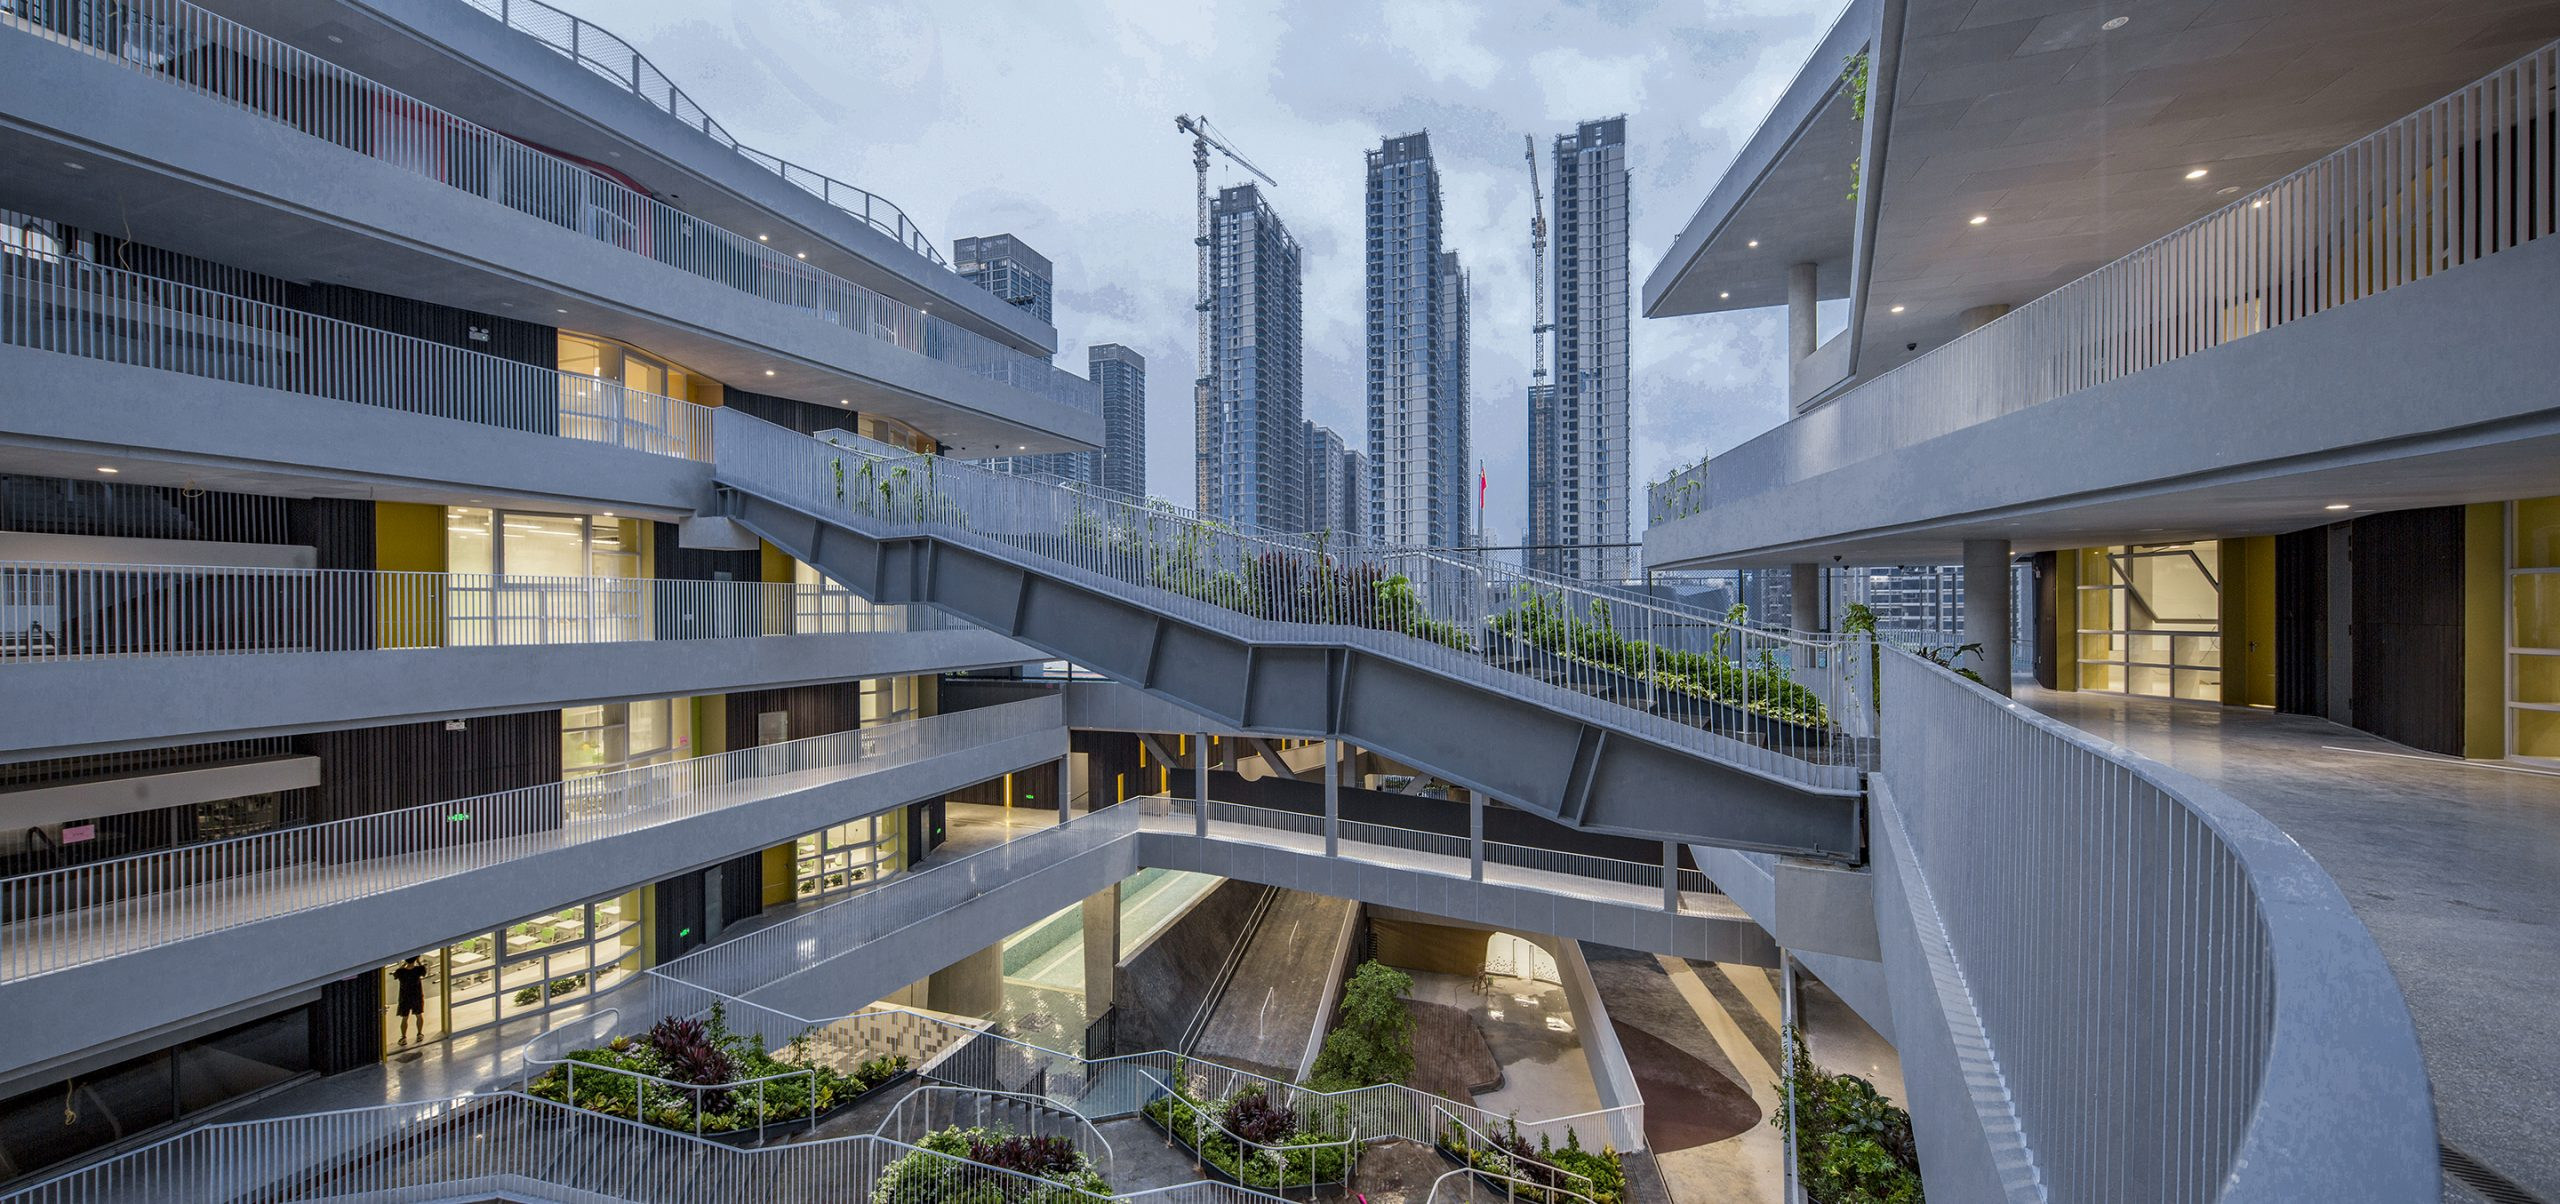 31-The urban scenery of the valley couryard@Nicky Huang